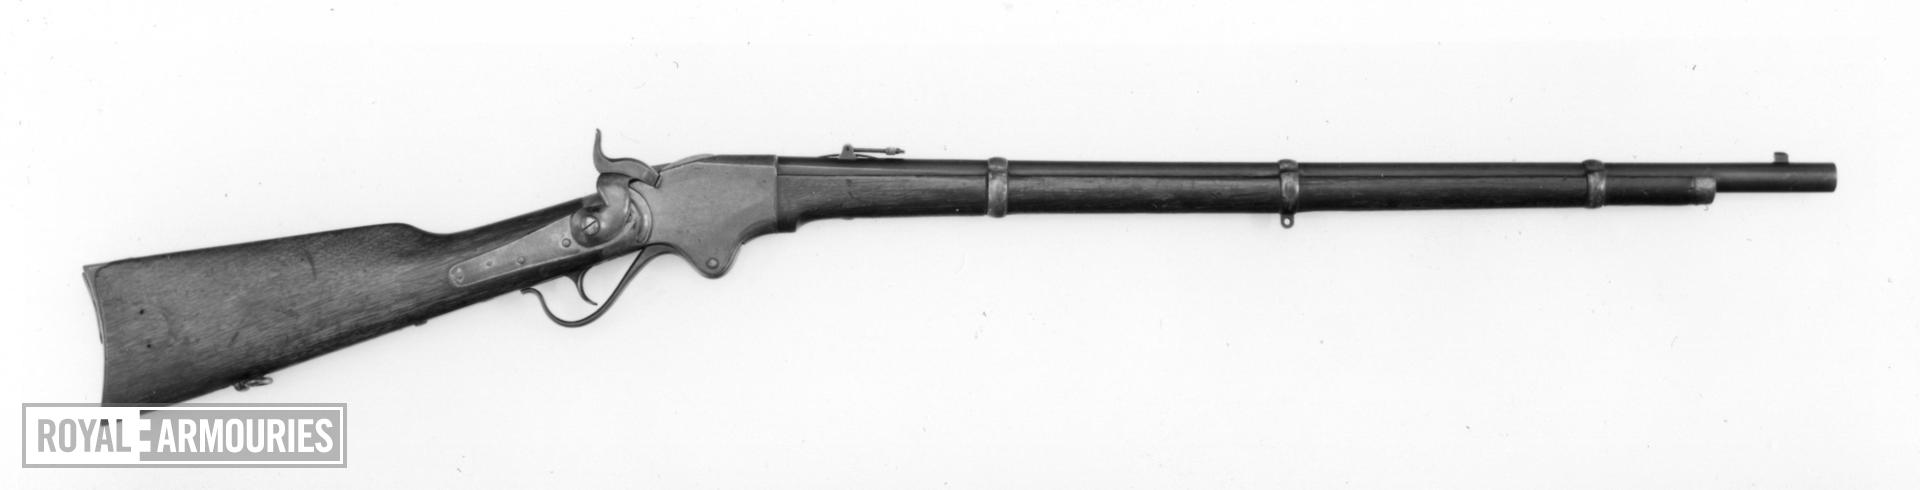 Rimfire lever-action magazine rifle - Spencer Army Model